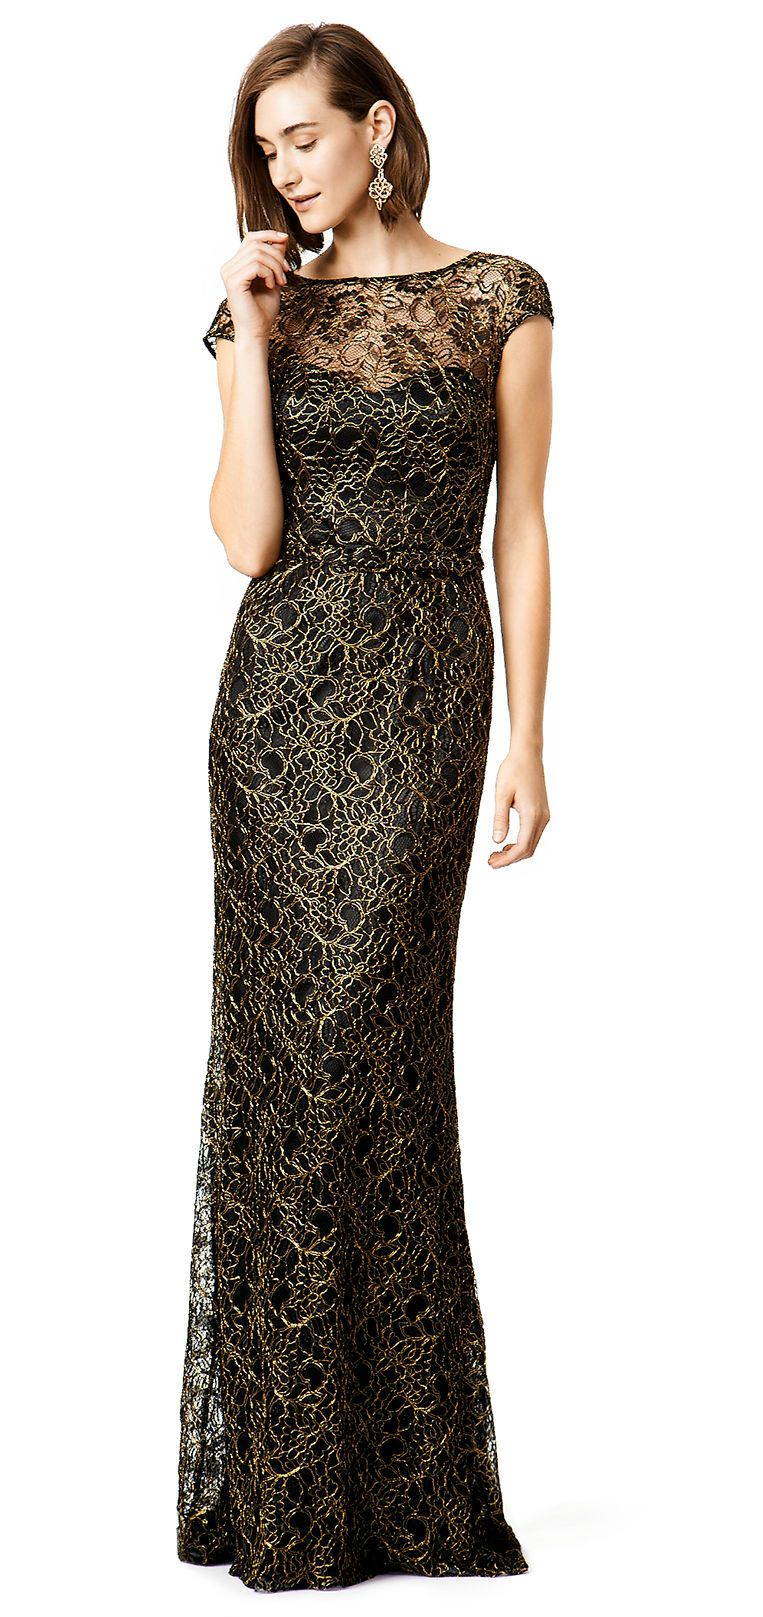 Black dress gold lace - Absolutely Stunning Black And Gold Lace Evening Gown By Theia At Rent The Runway